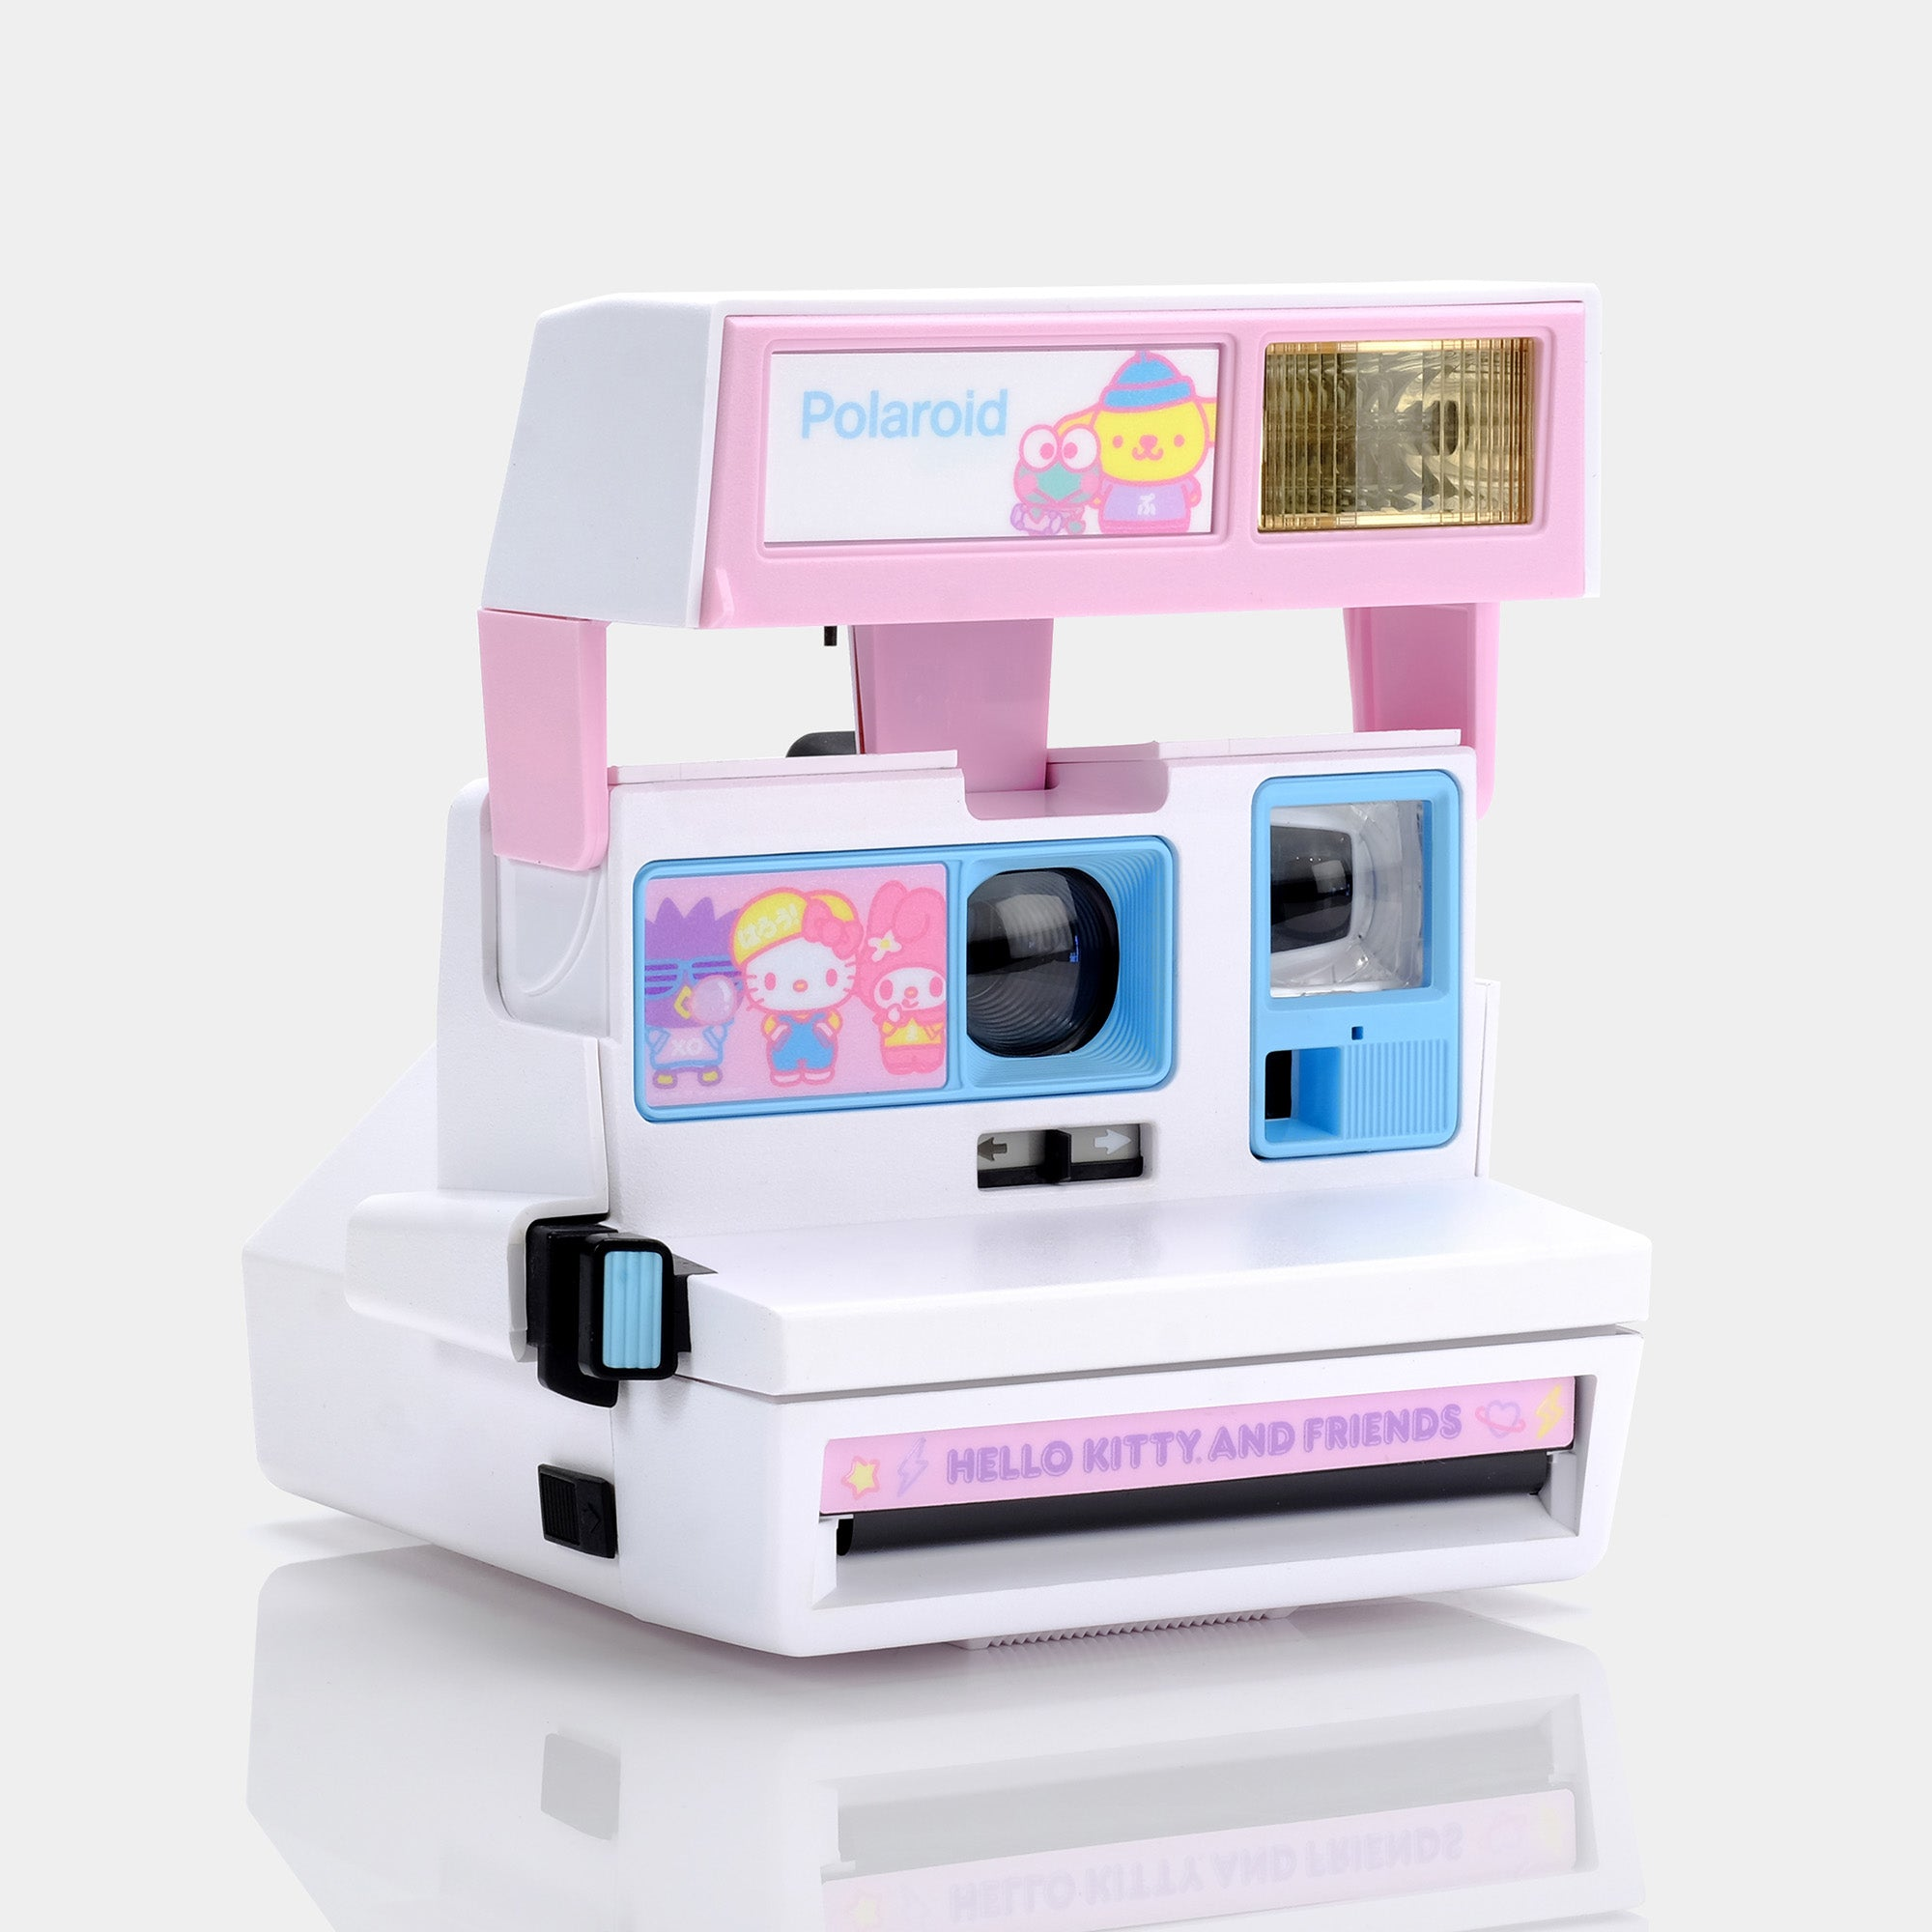 Polaroid x Hello Kitty & Friends 600 Camera